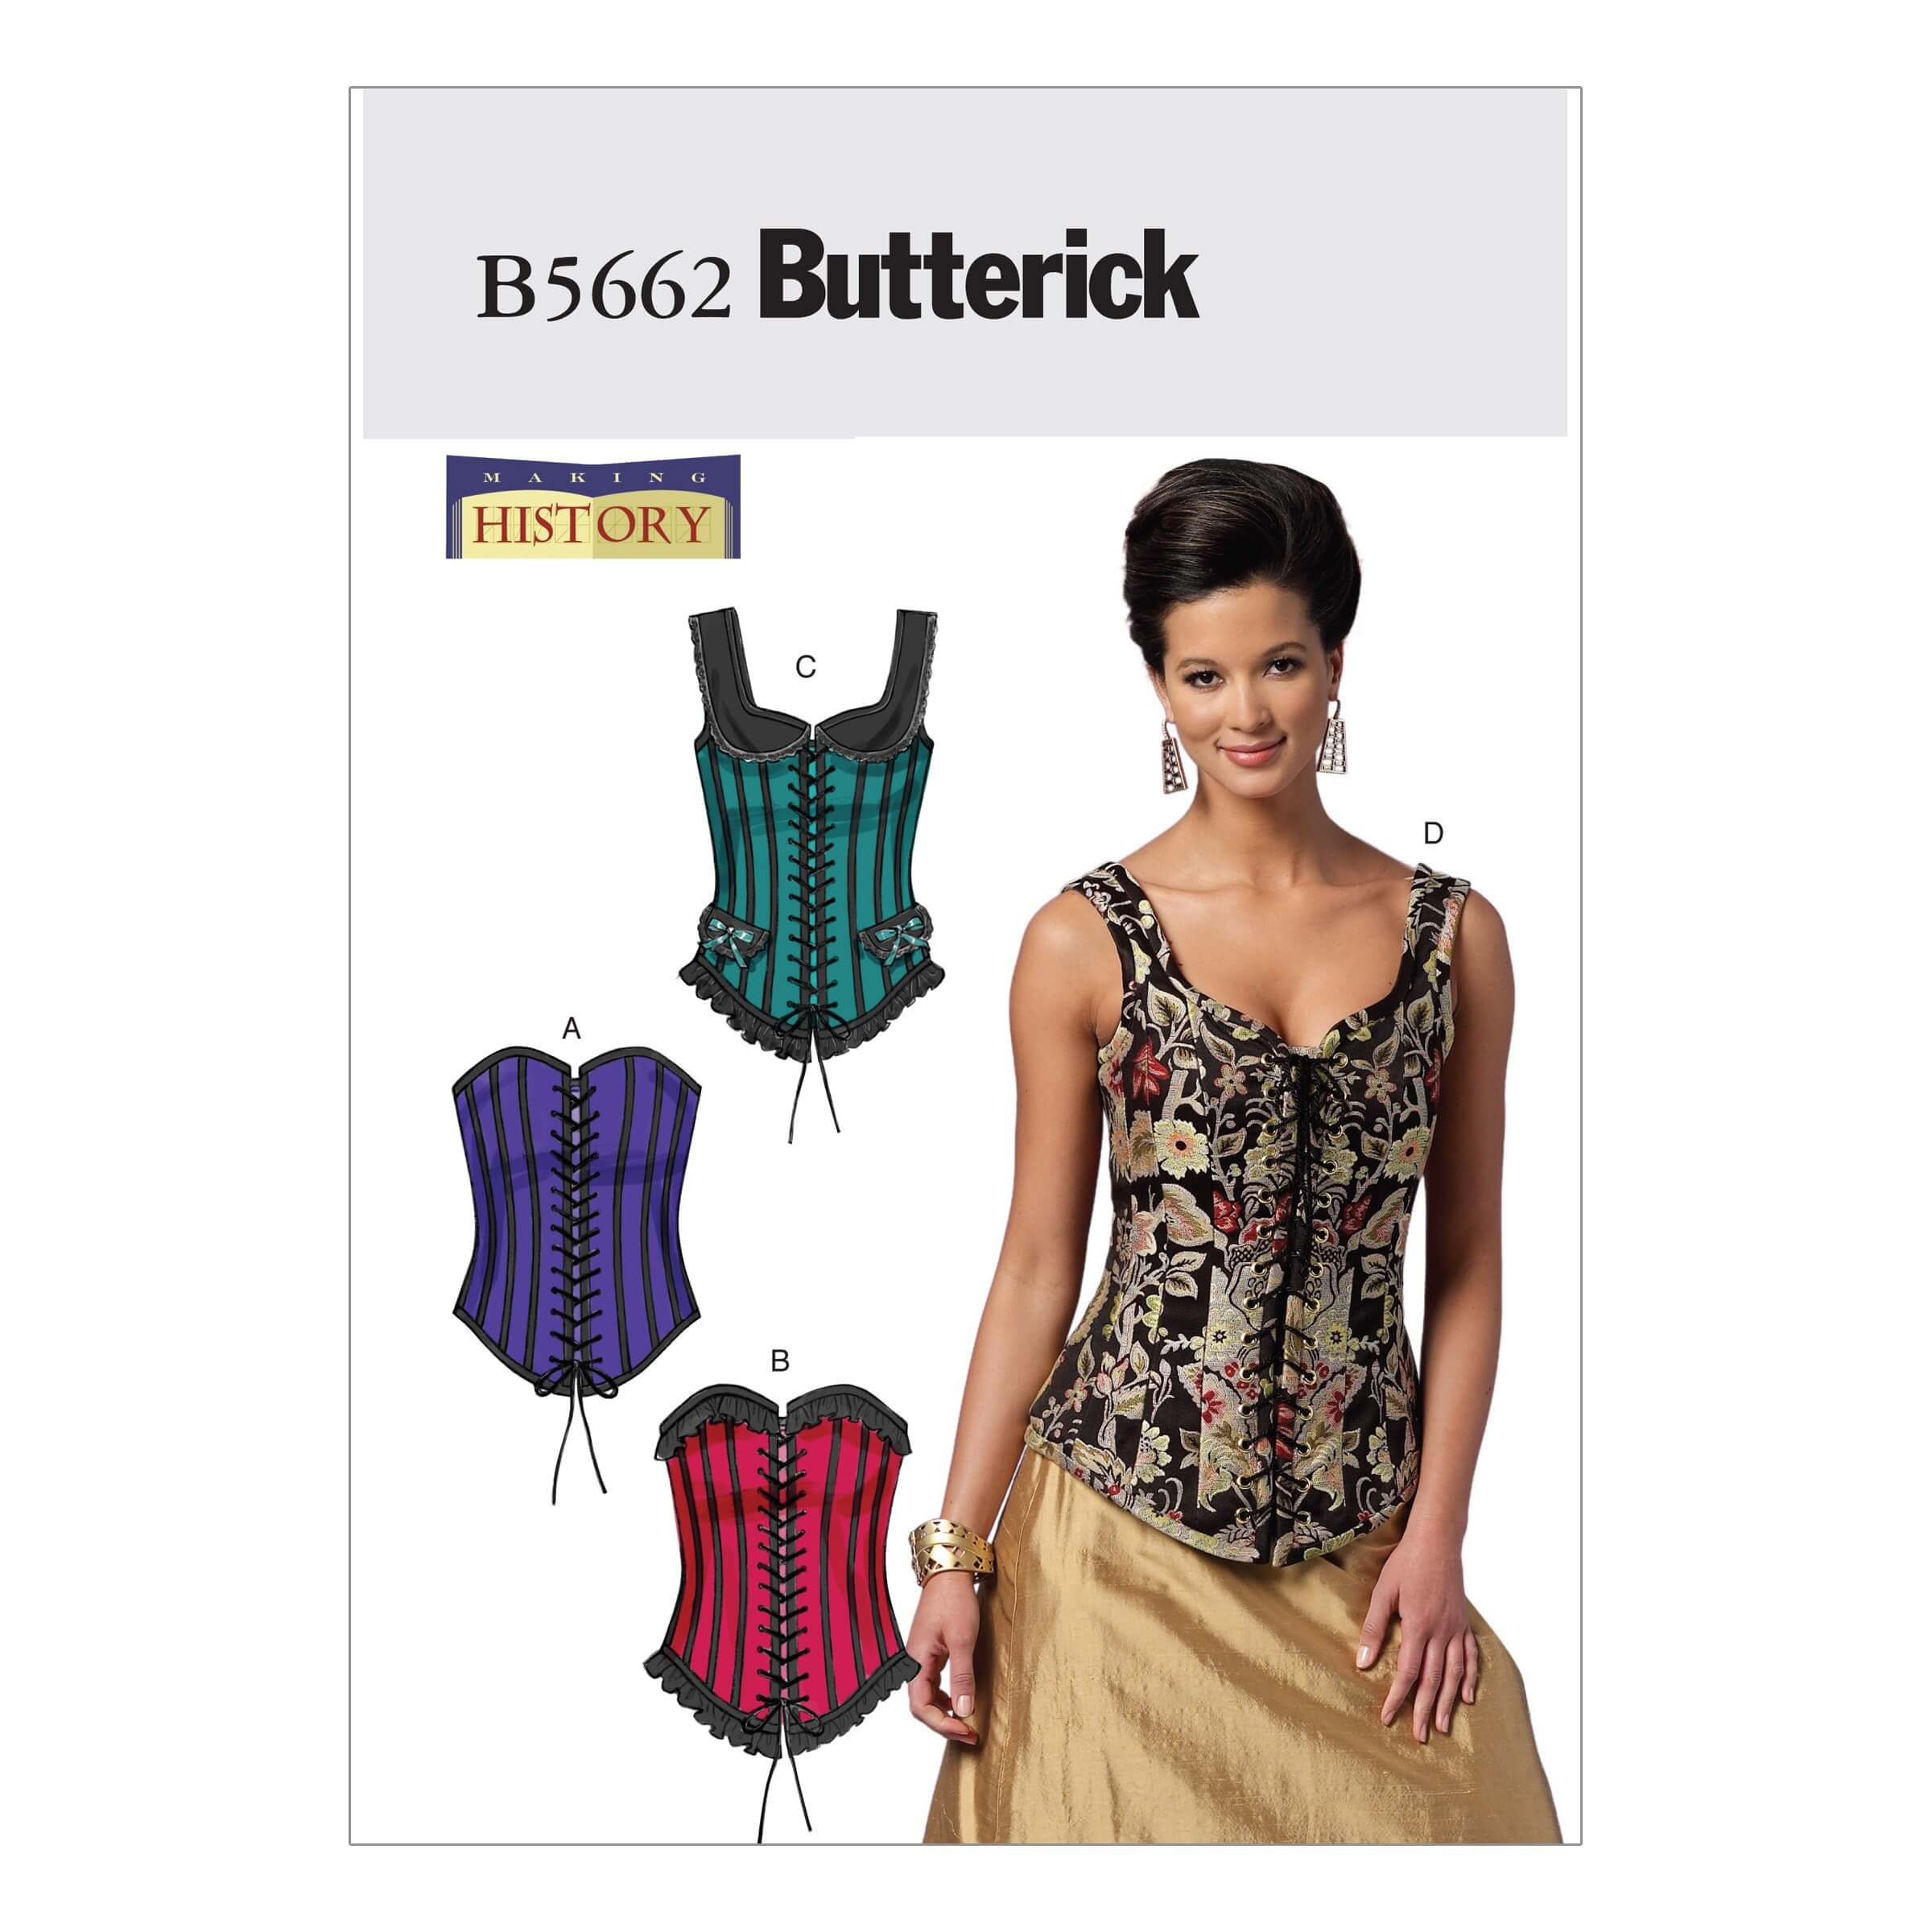 Butterick Sewing Pattern 5662 Misses' Vintage Style Corsets